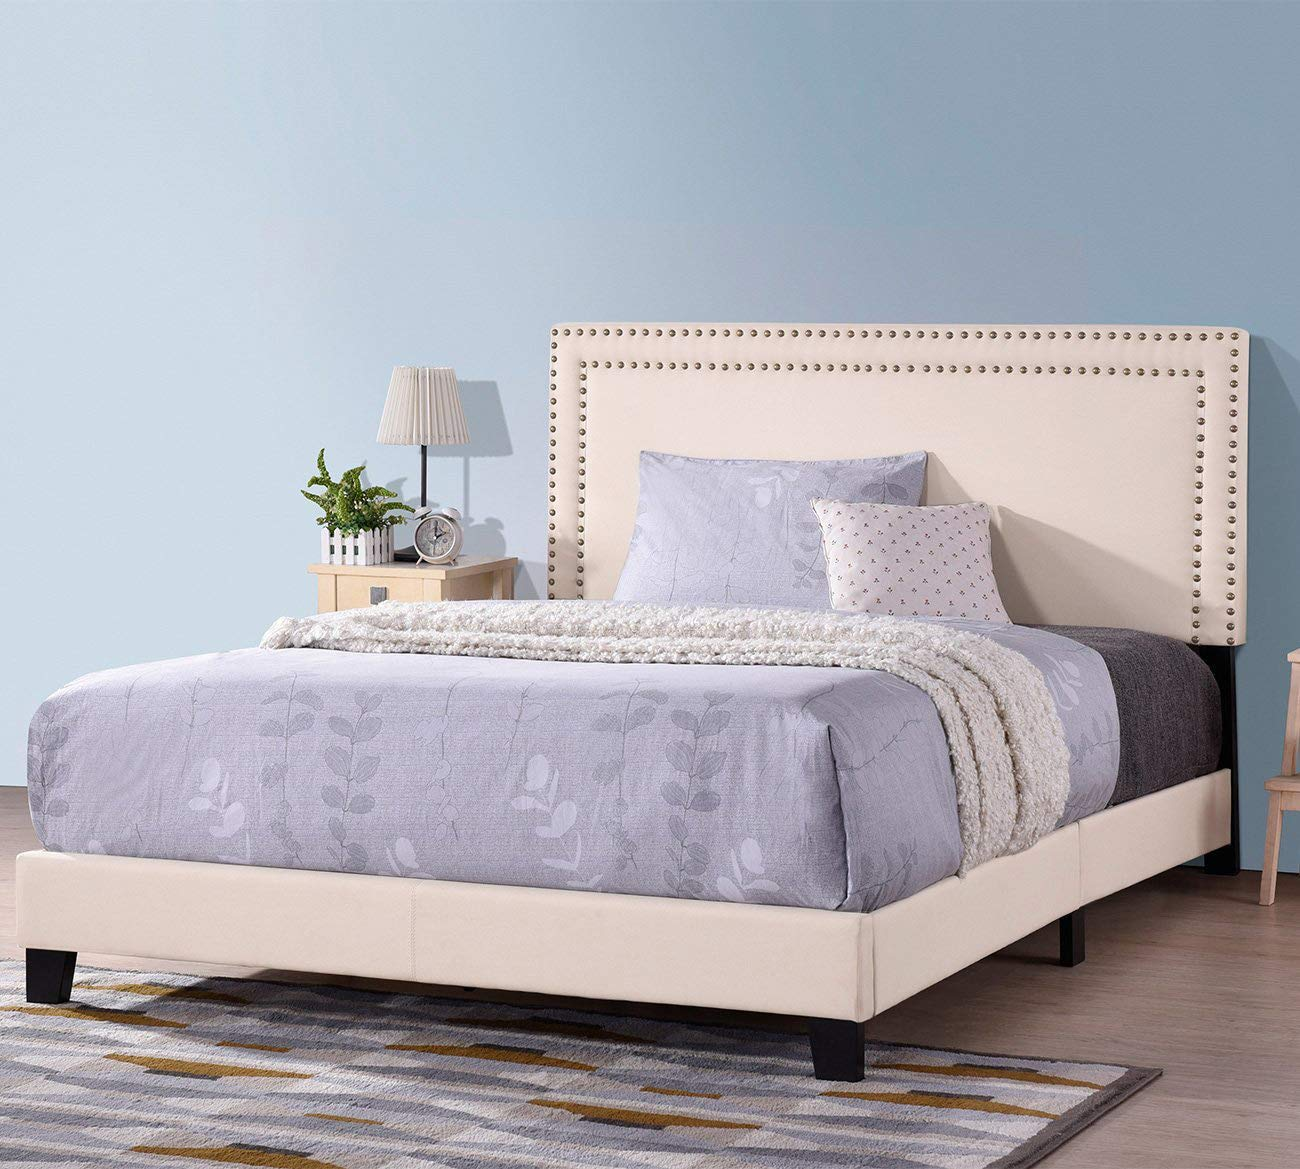 Upholstered Bed Frame Full Queen King, WeYoung Beige Platform Bed with Wooden Slat Support and Tufted Headboard Nailhead Detail Box Spring Required Full